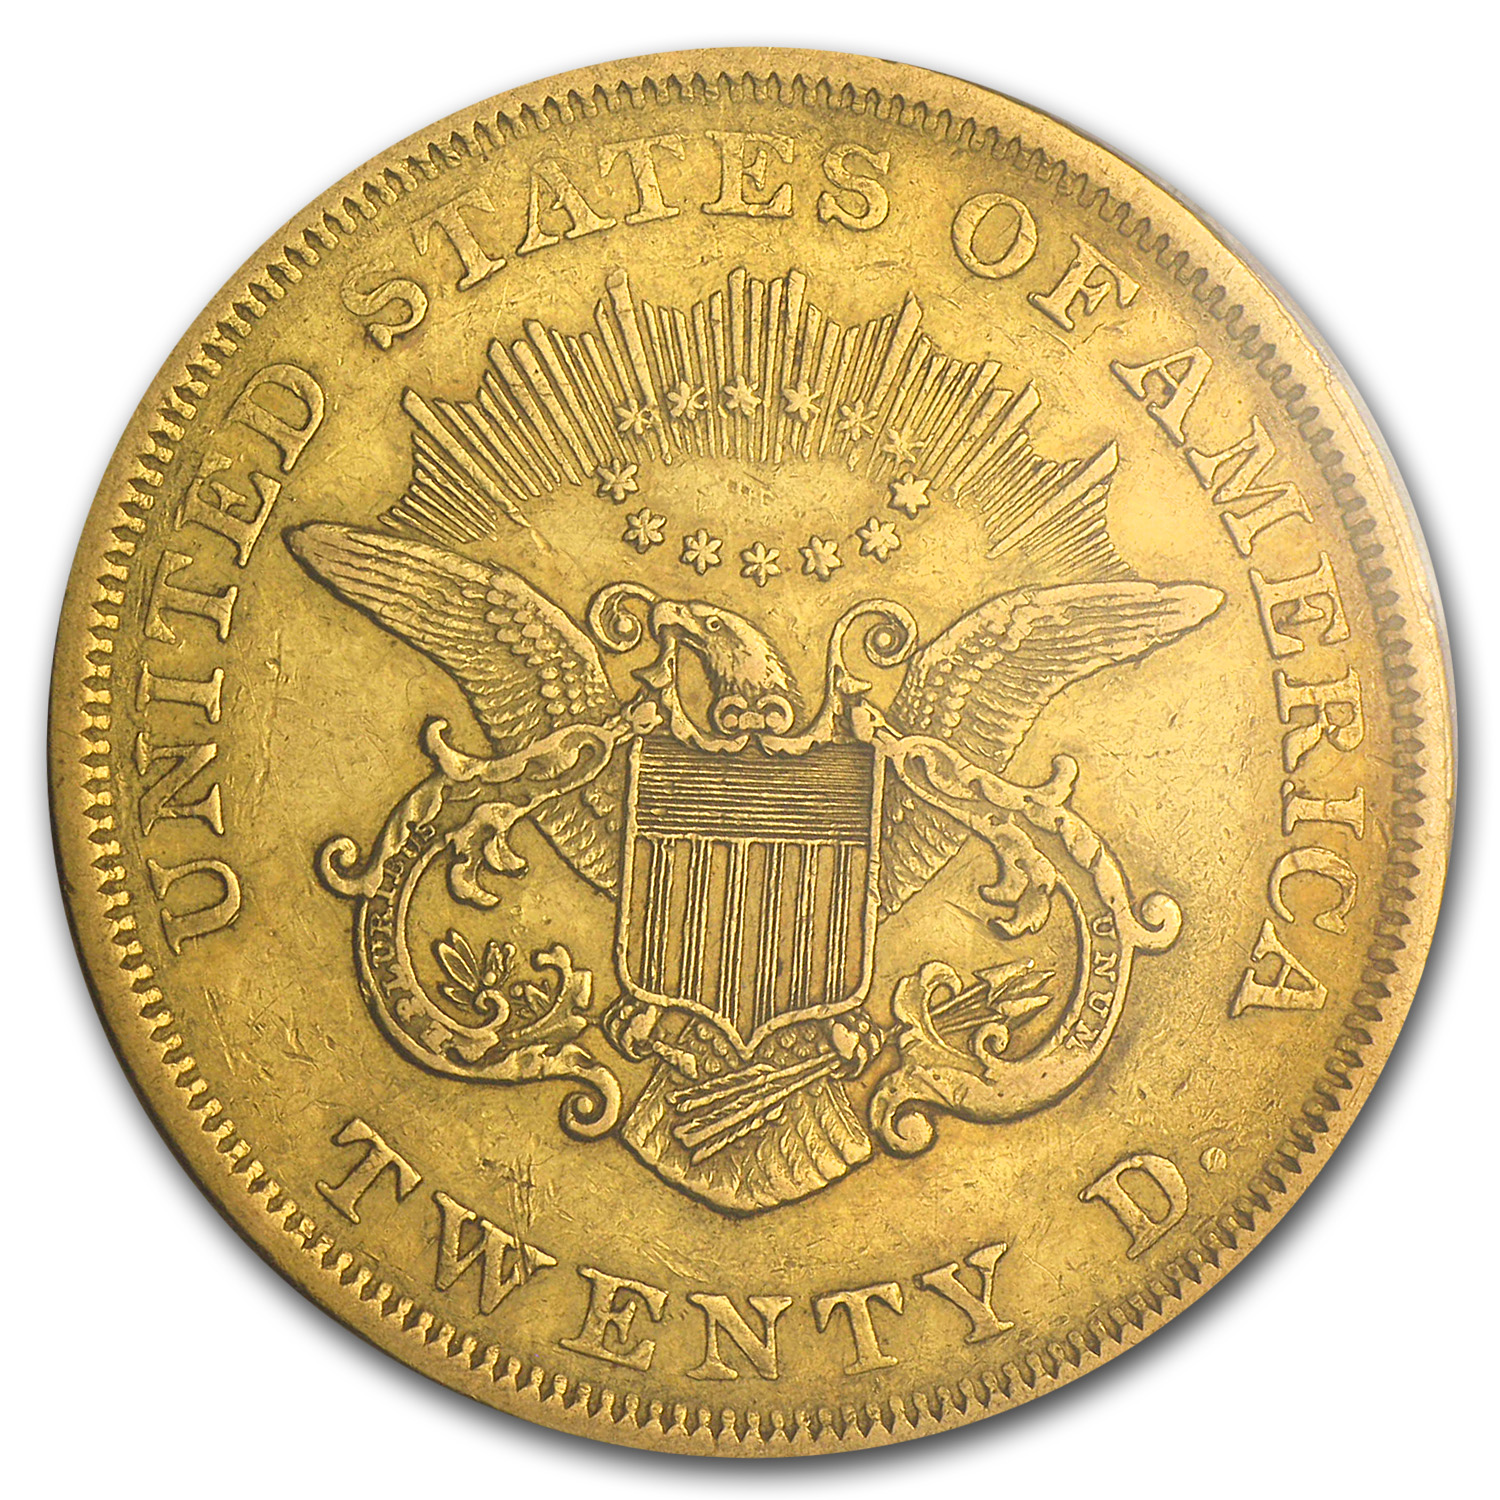 1851 $20 Gold Liberty Double Eagle - EF-45 PCGS